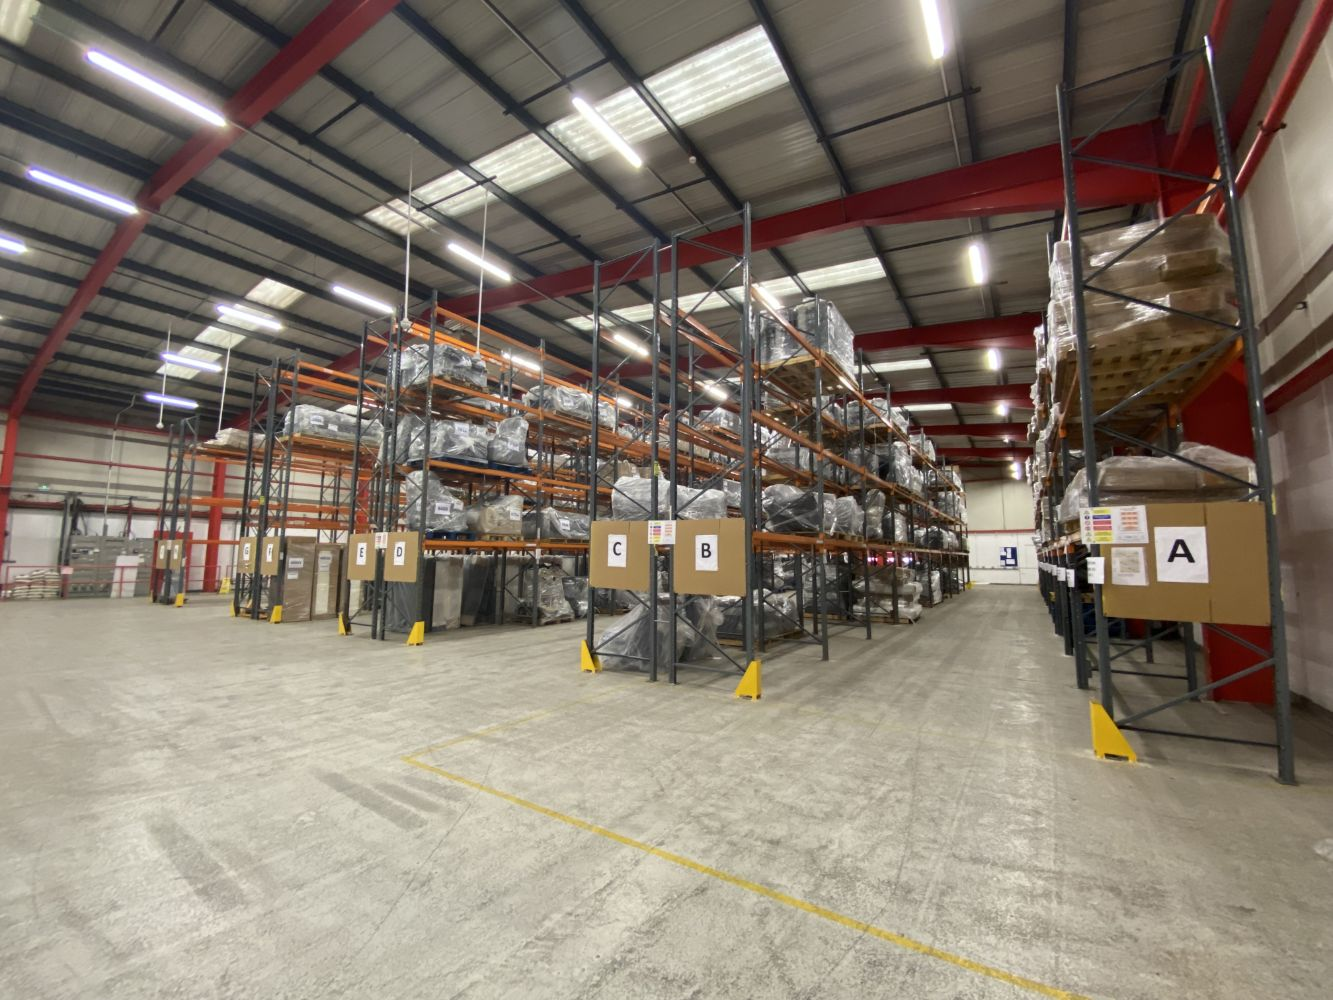 Loading Ramp, Pallet Racking, Warehouse Furniture & Eqpt, New and BrightHouse Refurbished Domestic/ Household Furniture Stock